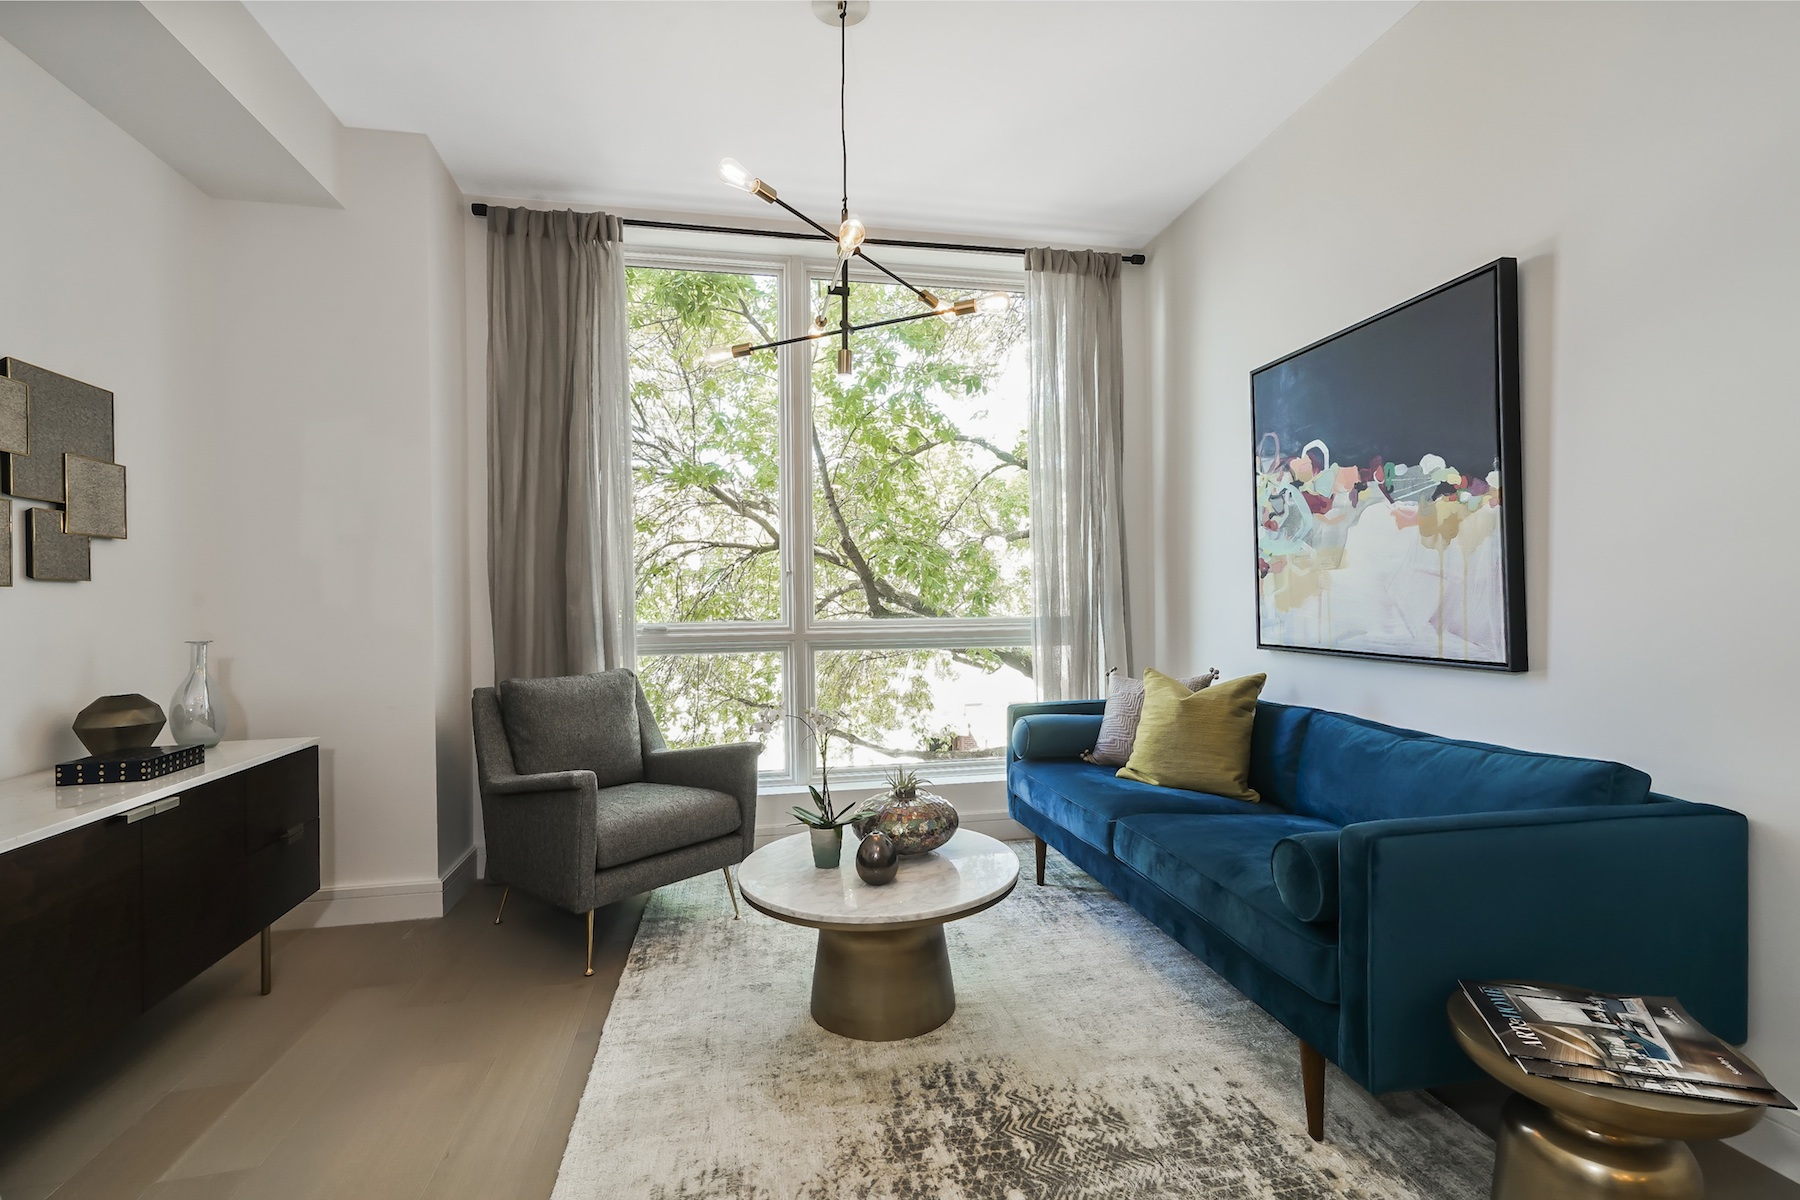 Additional photo for property listing at Stanton on Sixth 695 6th Avenue 2K Brooklyn, New York 11215 United States